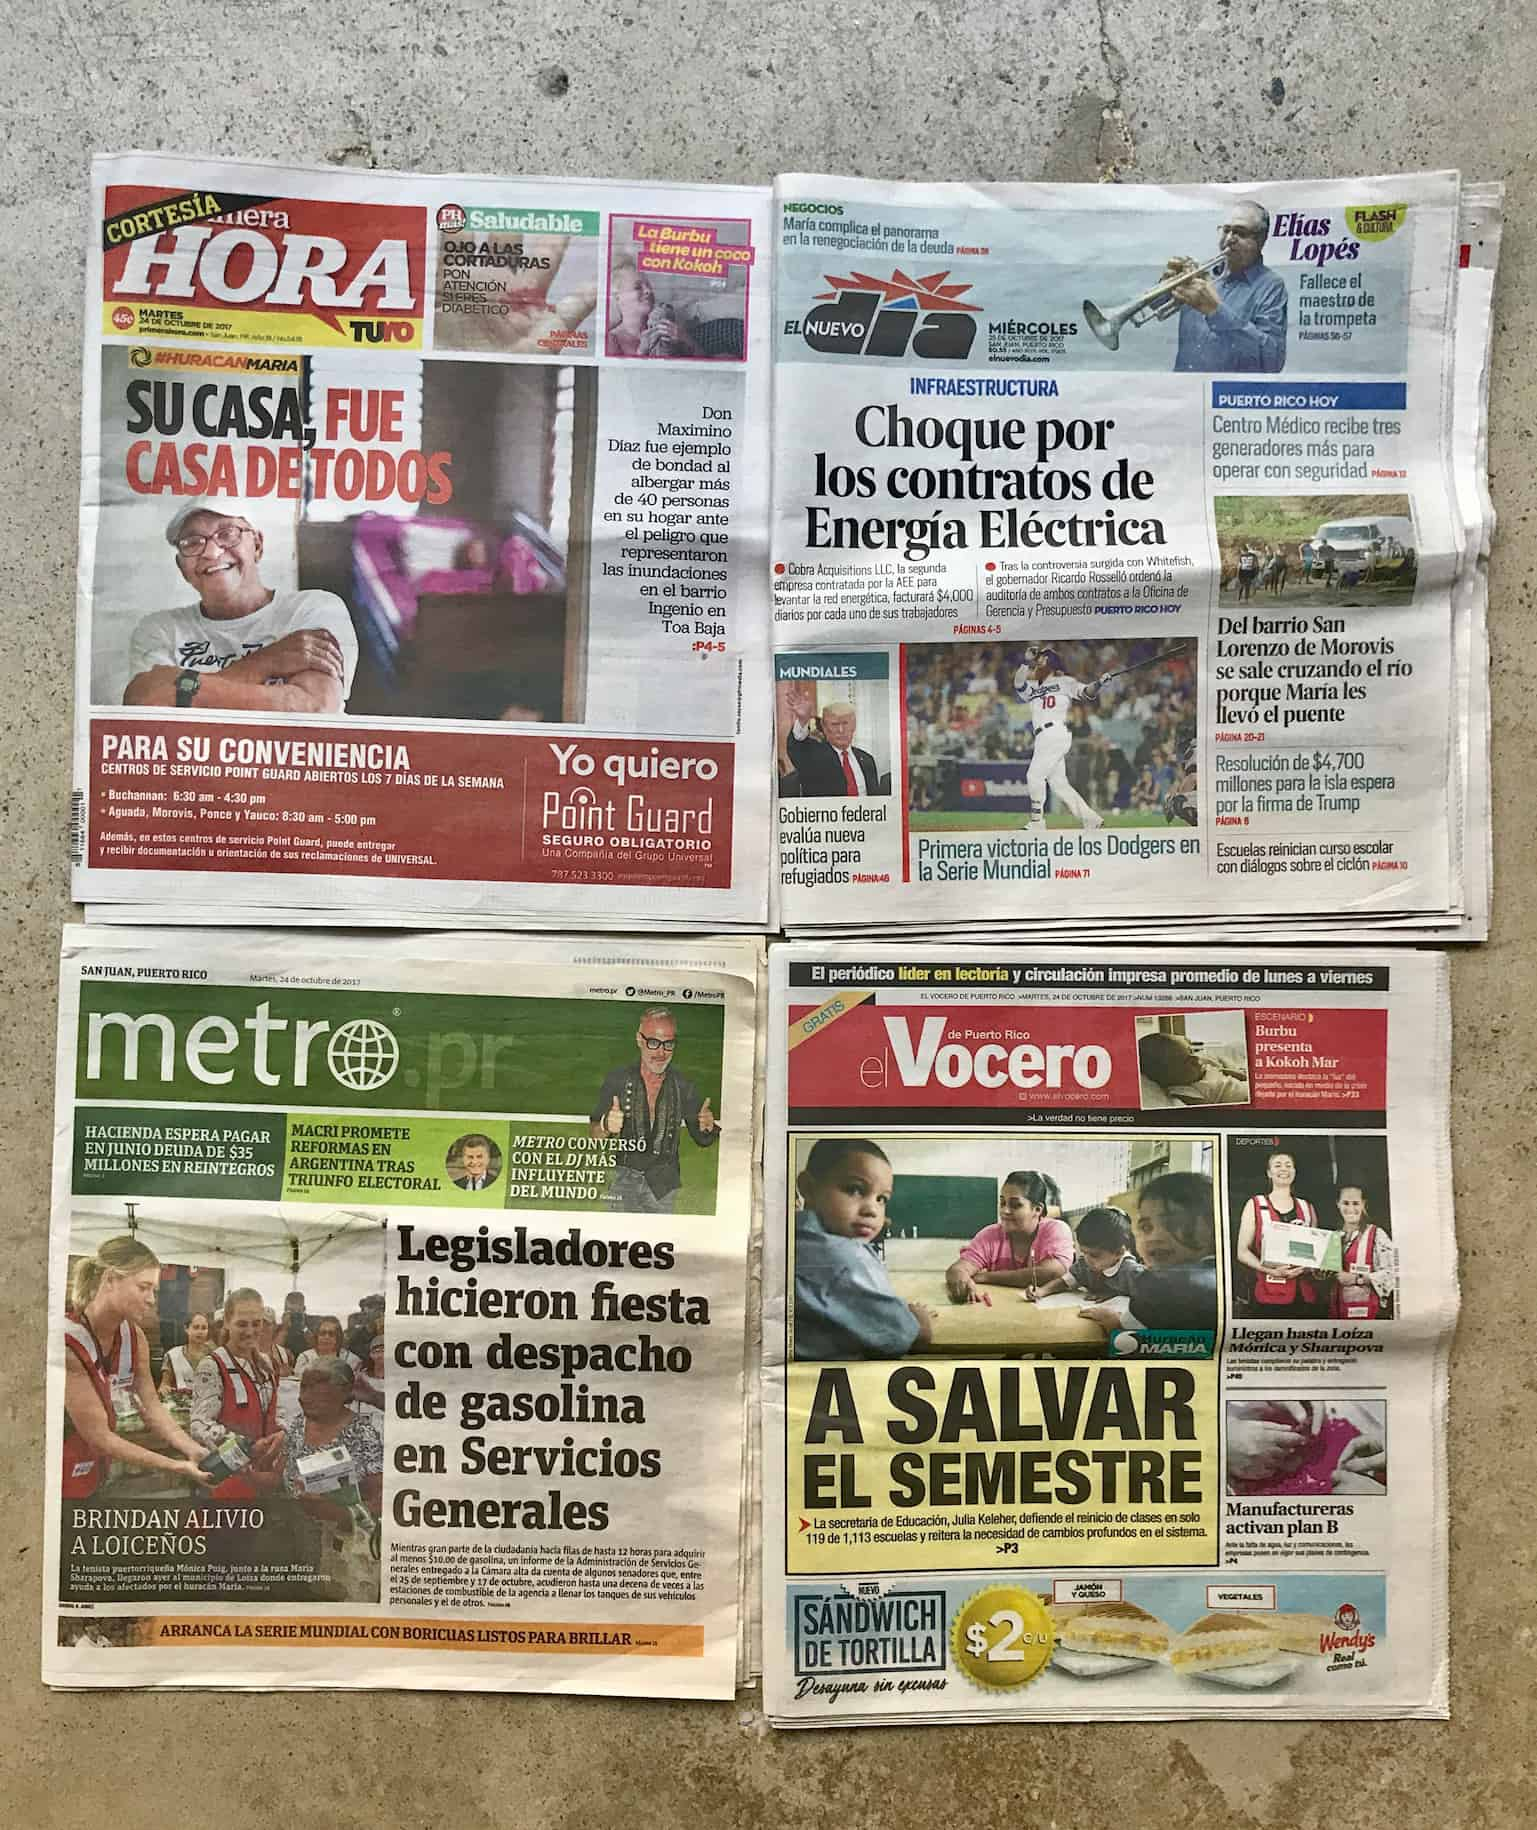 The front pages of 4 newspapers are tacked on a wall